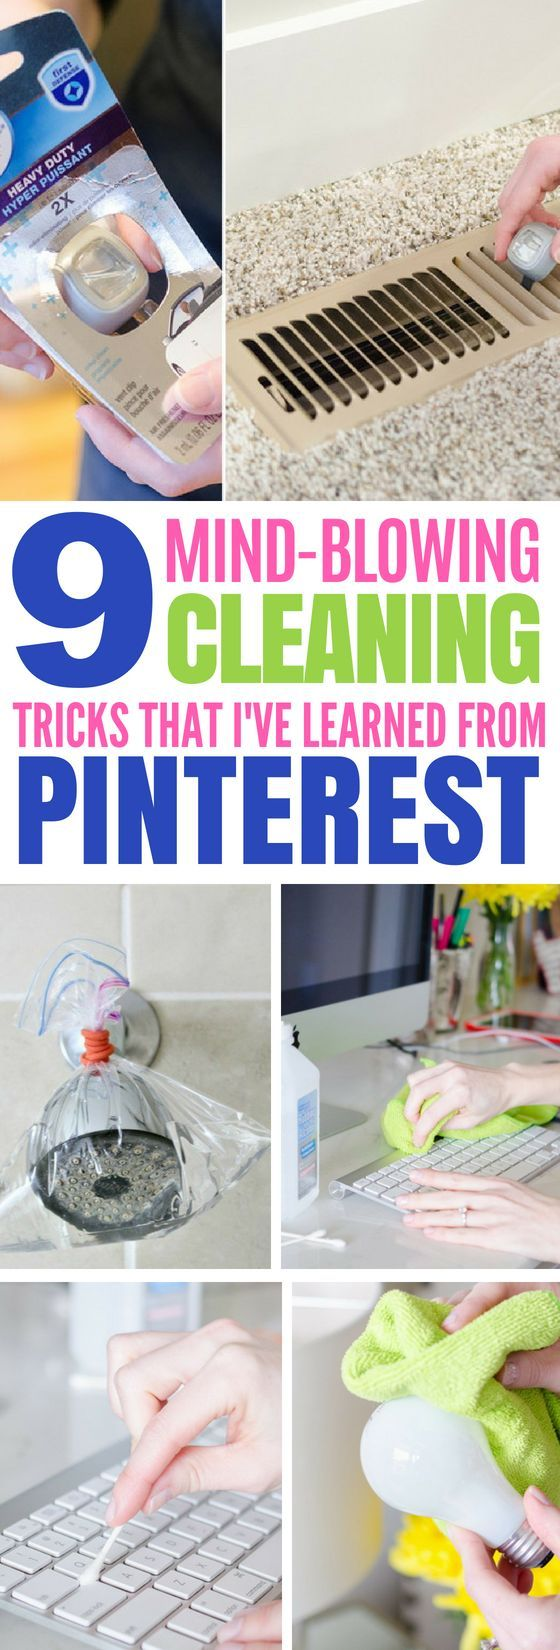 These 9 Spring Cleaning Hacks Are Such Life Savers! #cleaning #organize #hacks #...